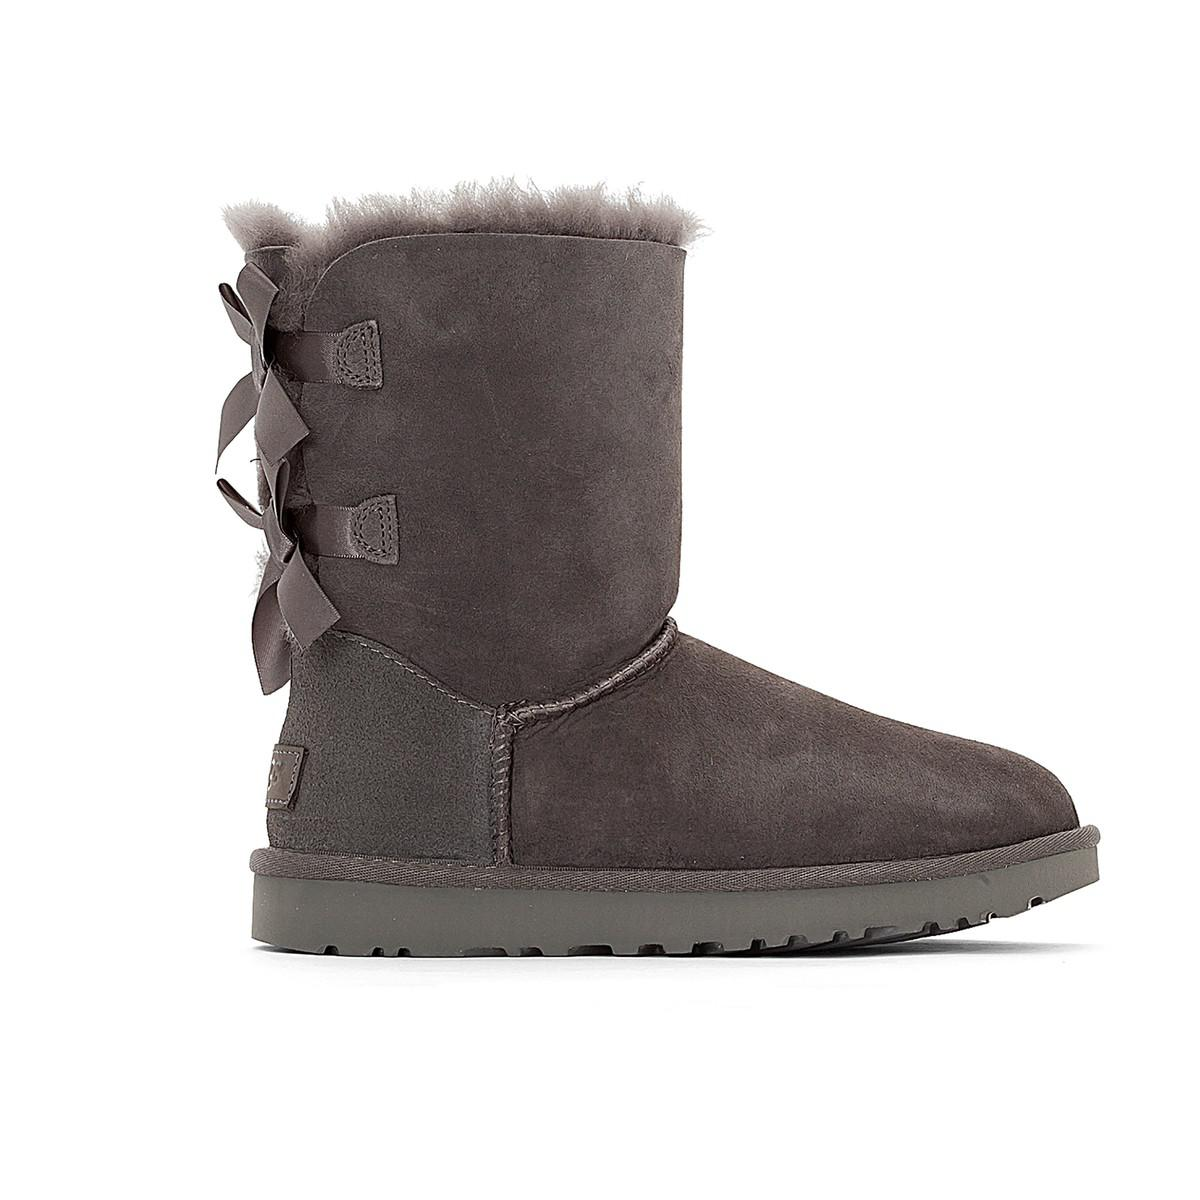 f3e966435a2 Lyst - Ugg Bailey Bow Sheepskin Short Boots in Gray